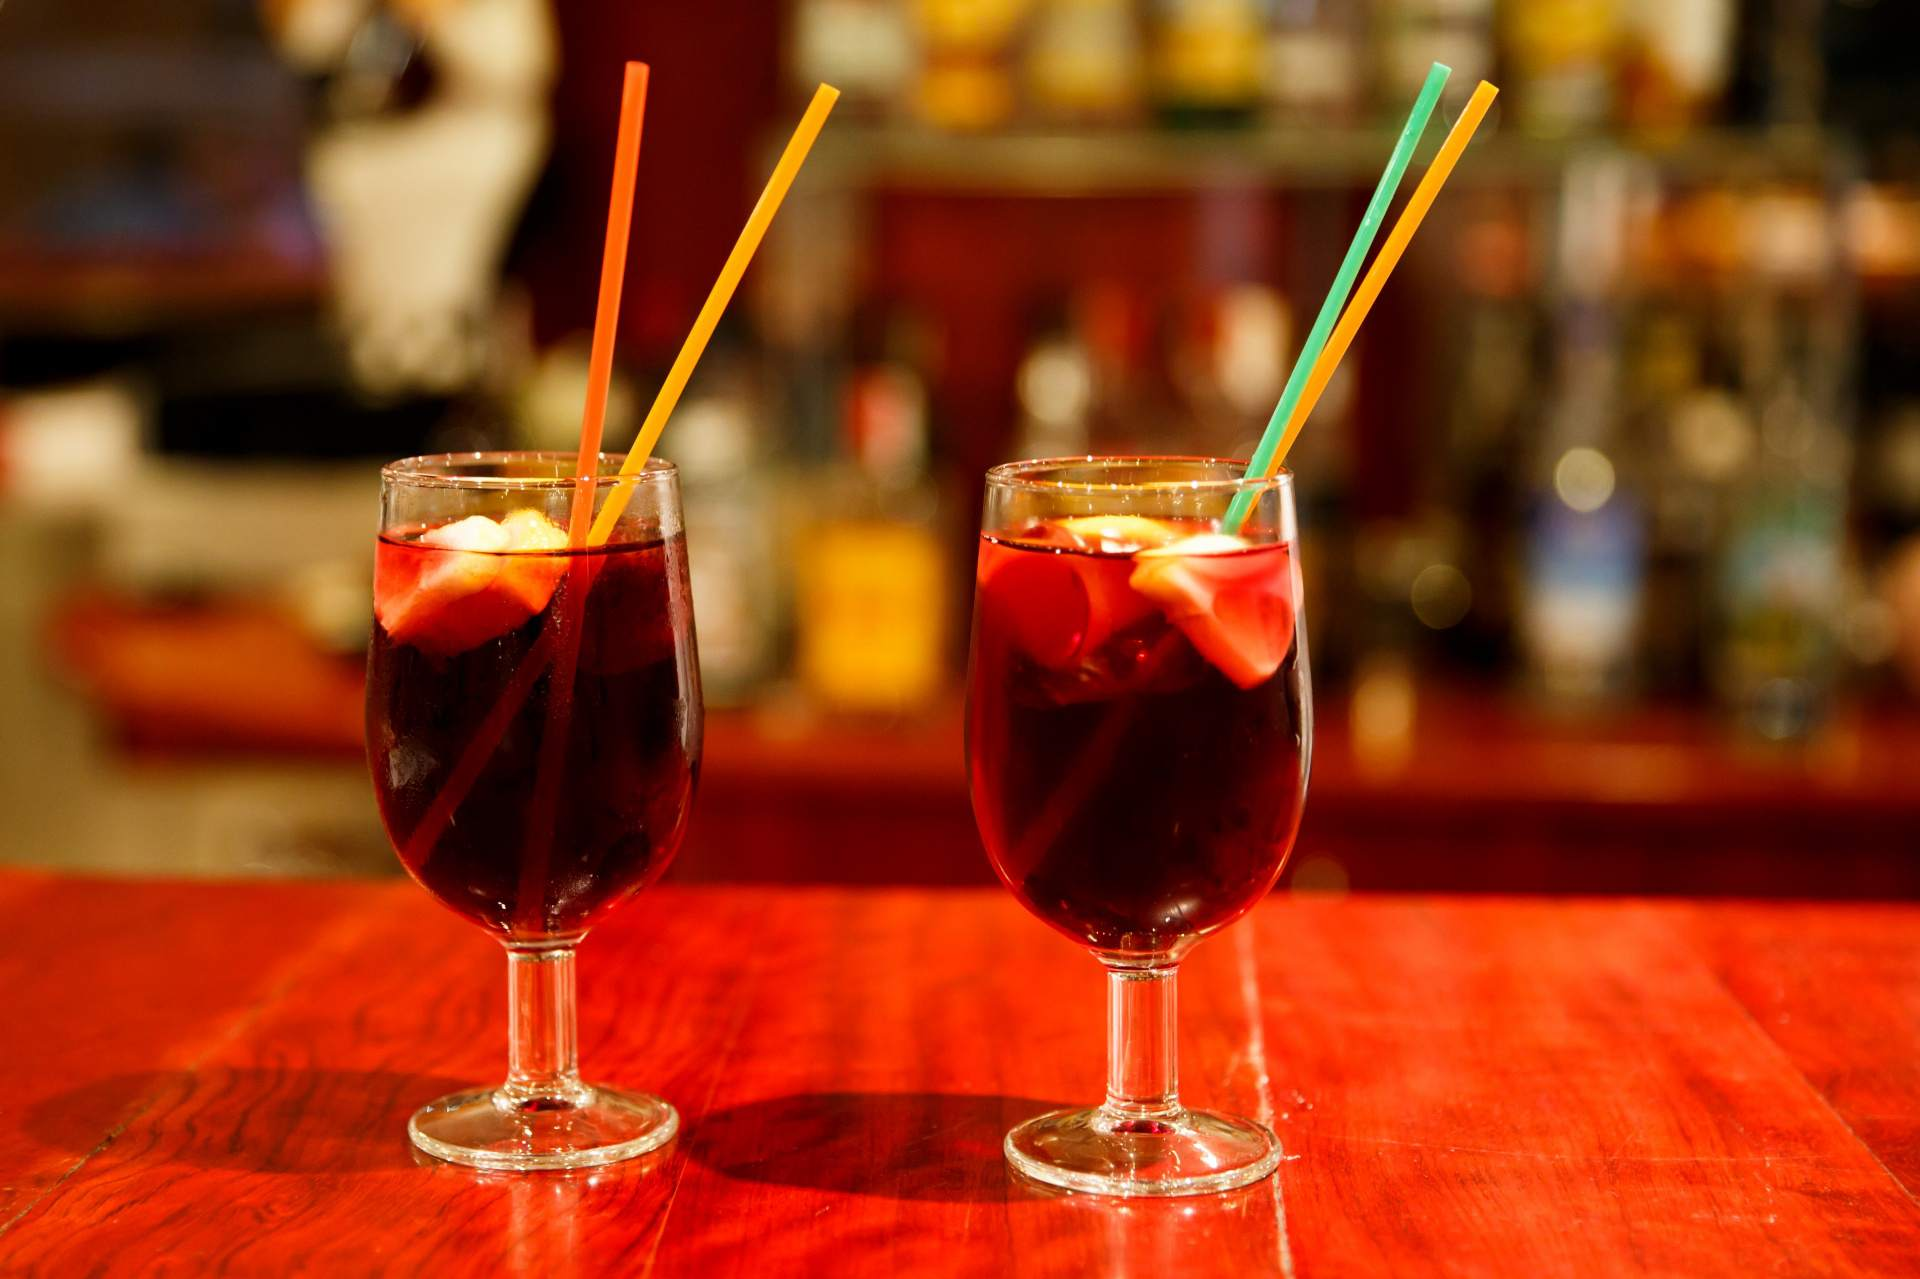 Glasses of sangria on a table